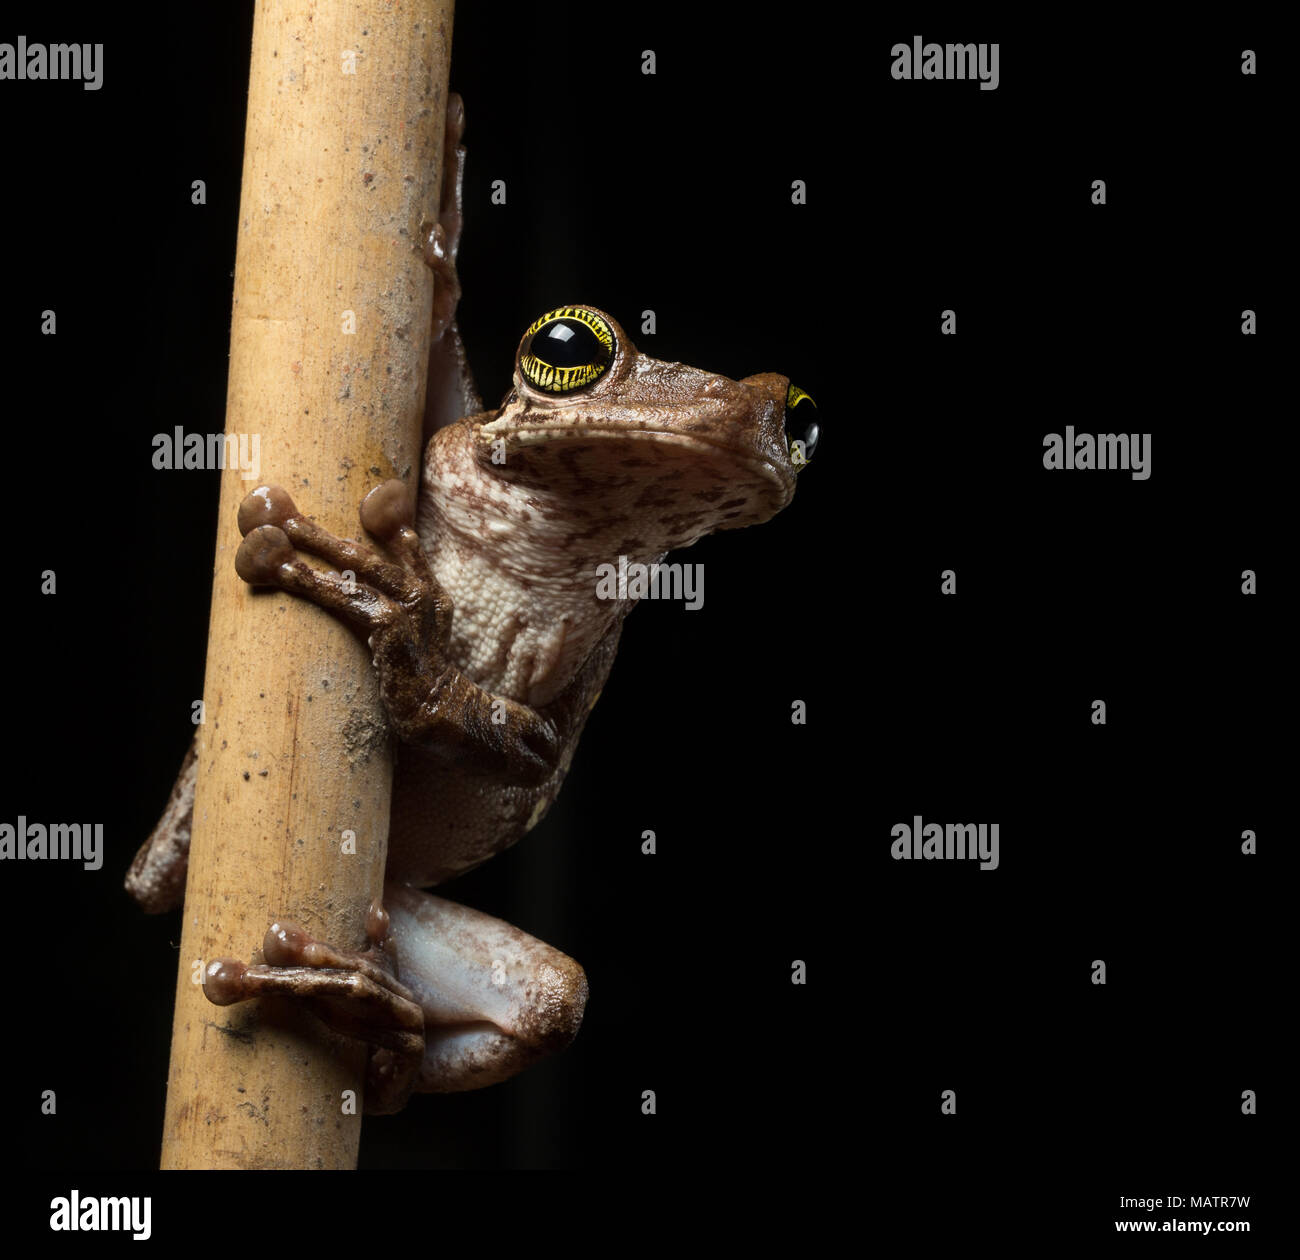 Tropical tree frog, Osteocephalus taurinus. A treefrog from the Amazon raon forest with beautiful colored eyes. Macro of an exotic amphibian at night. - Stock Image